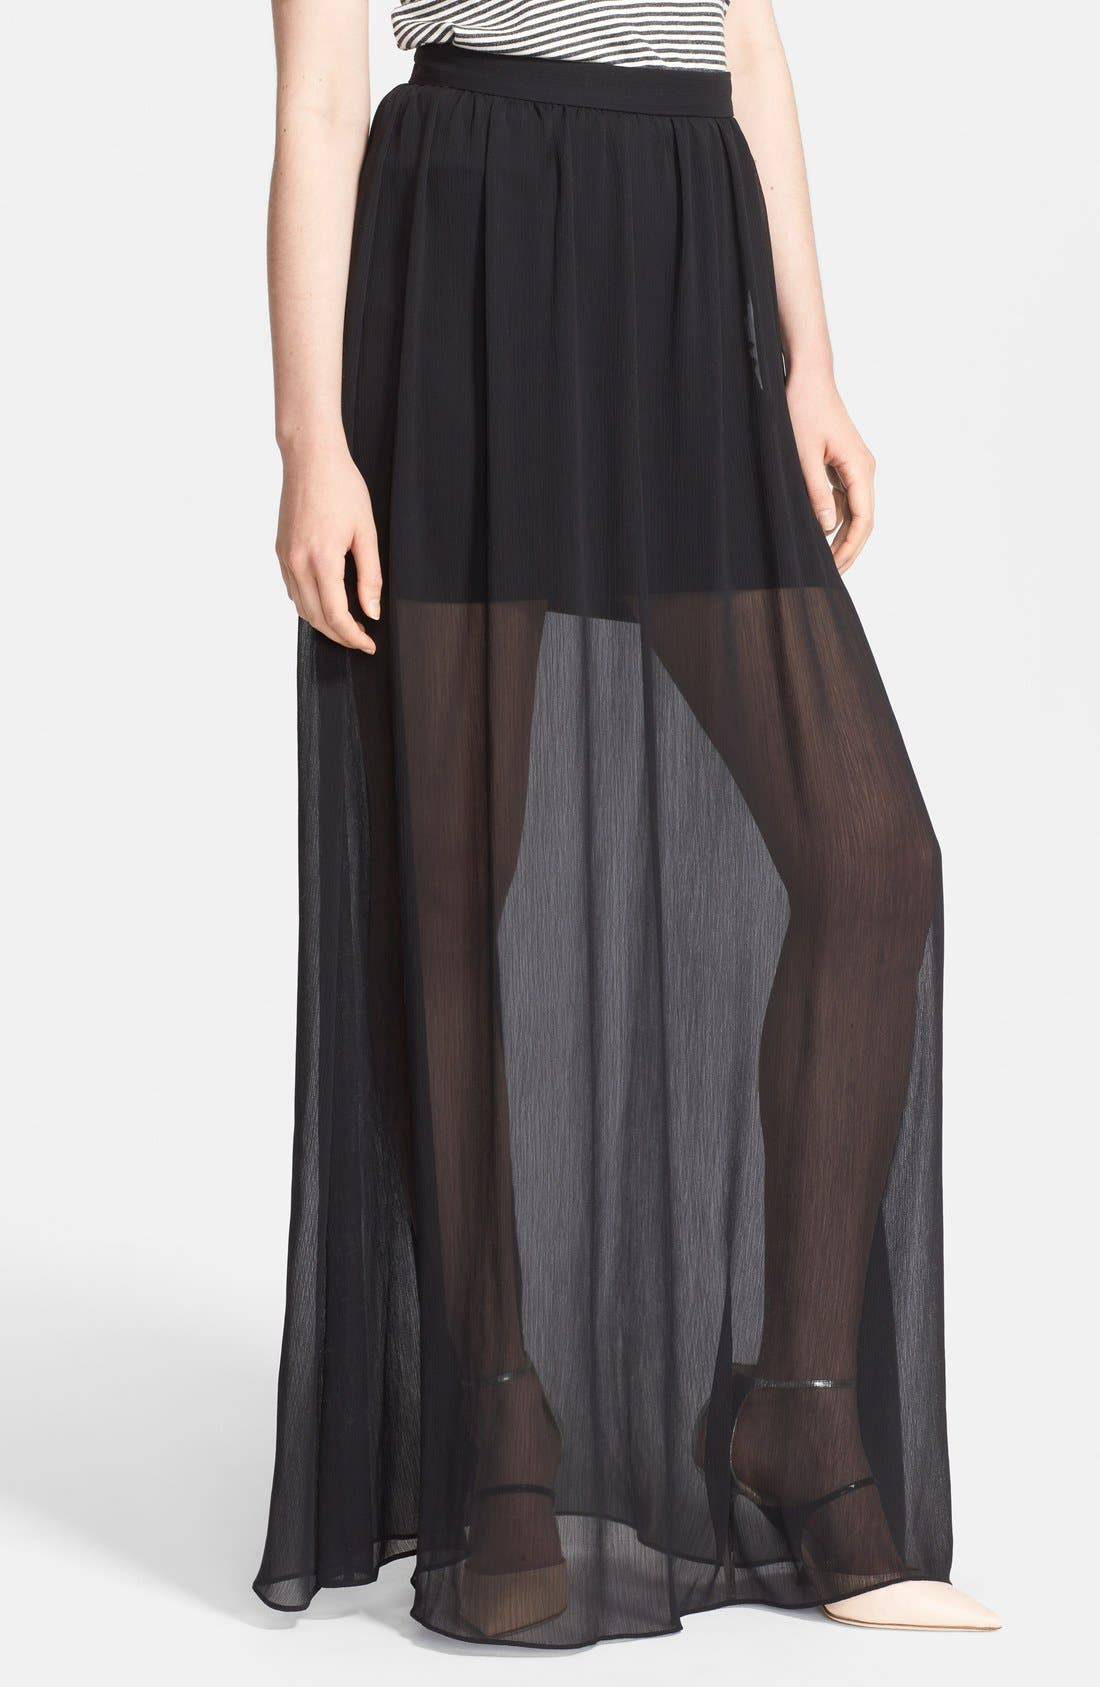 Alternate Image 1 Selected - Alice + Olivia Chiffon Maxi Skirt